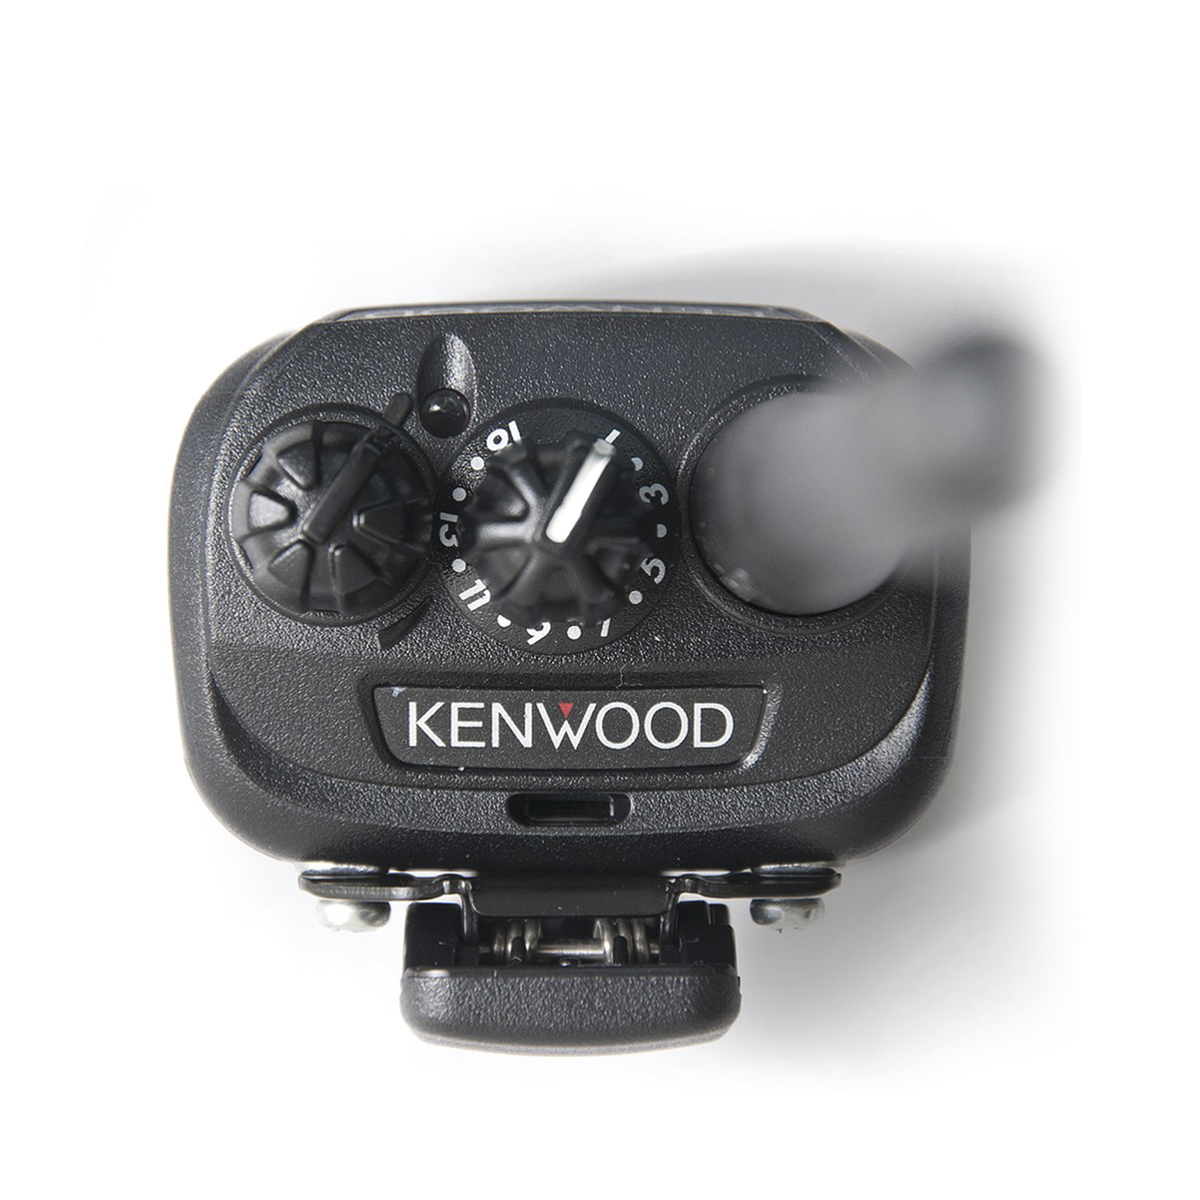 Radio KENWOOD NX-340 Digital UHF 400-470 MHz